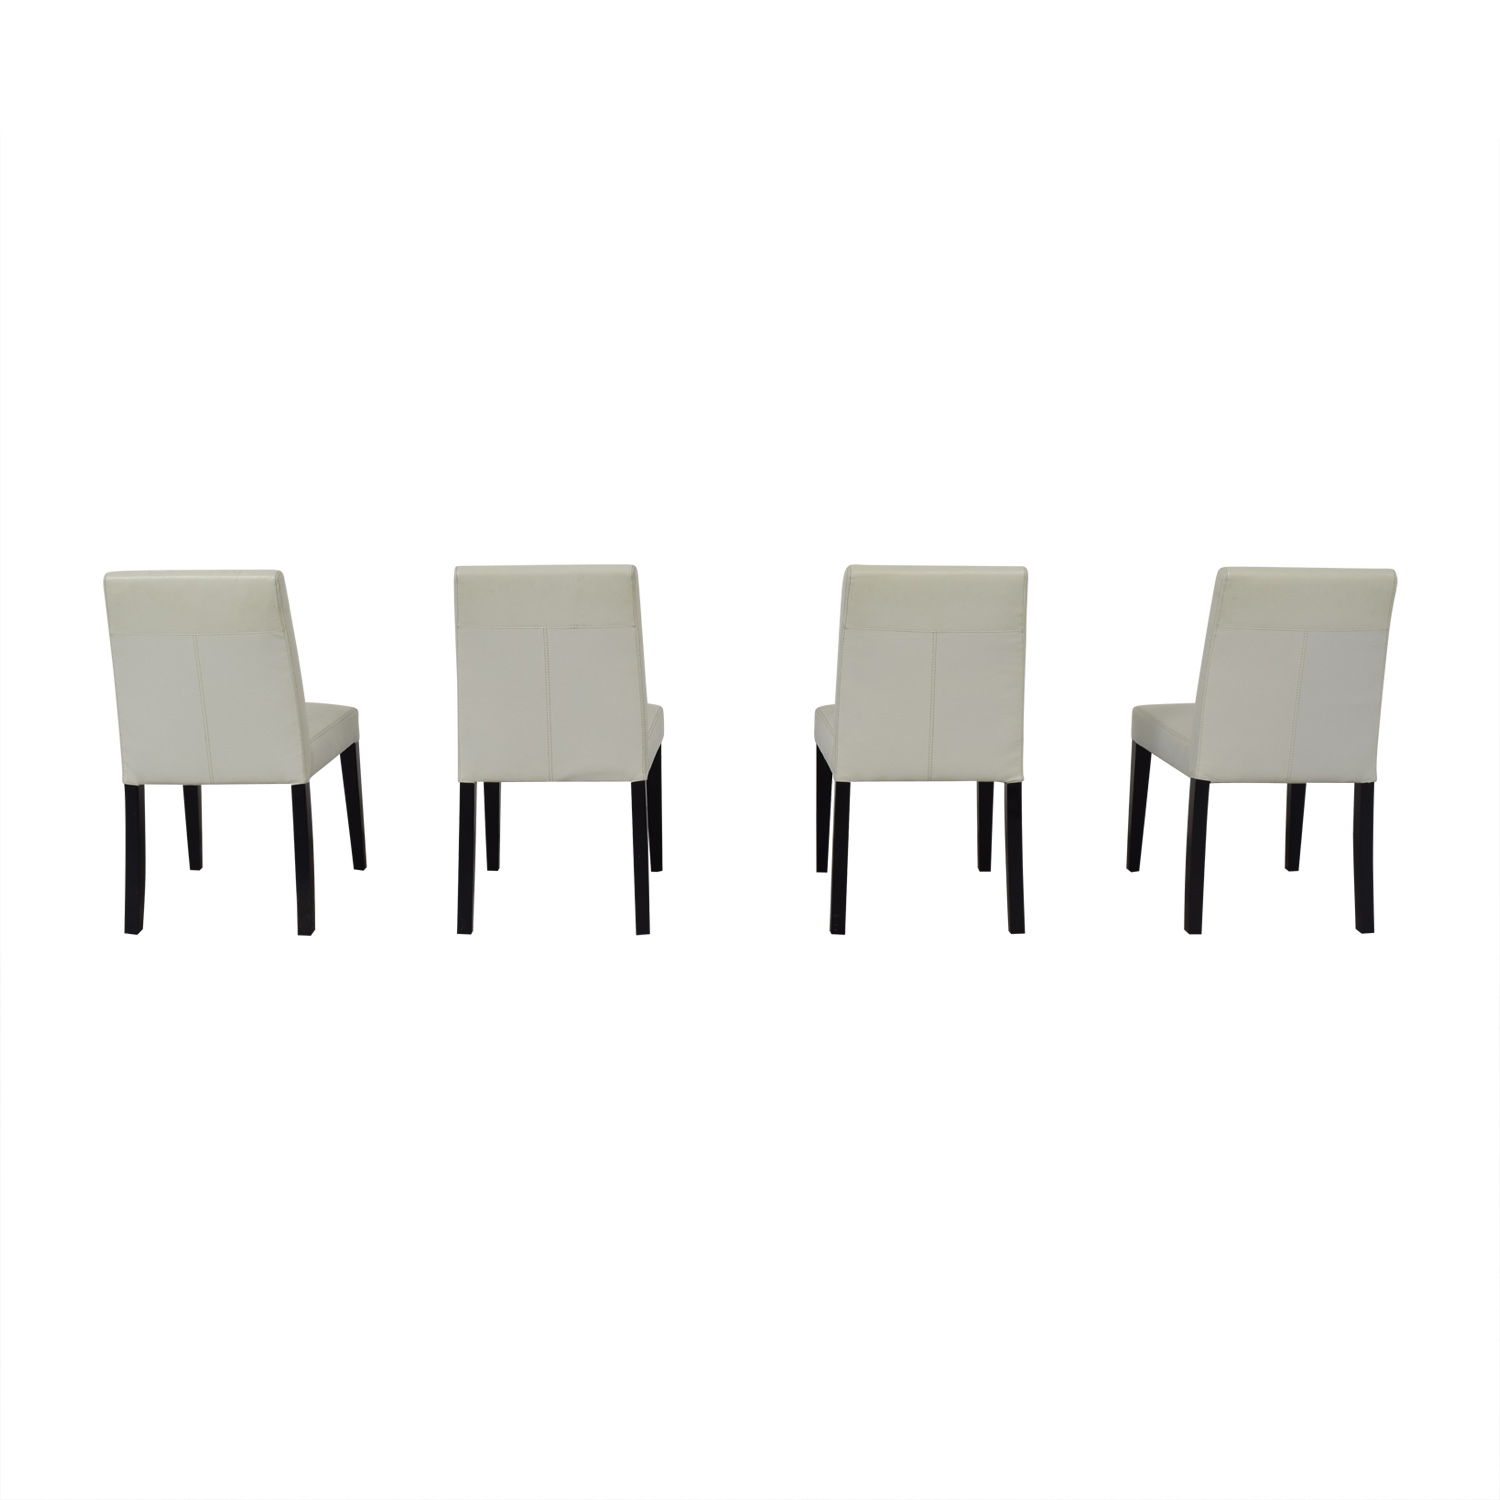 Crate & Barrel Crate & Barrel White Leather Dining Chairs price